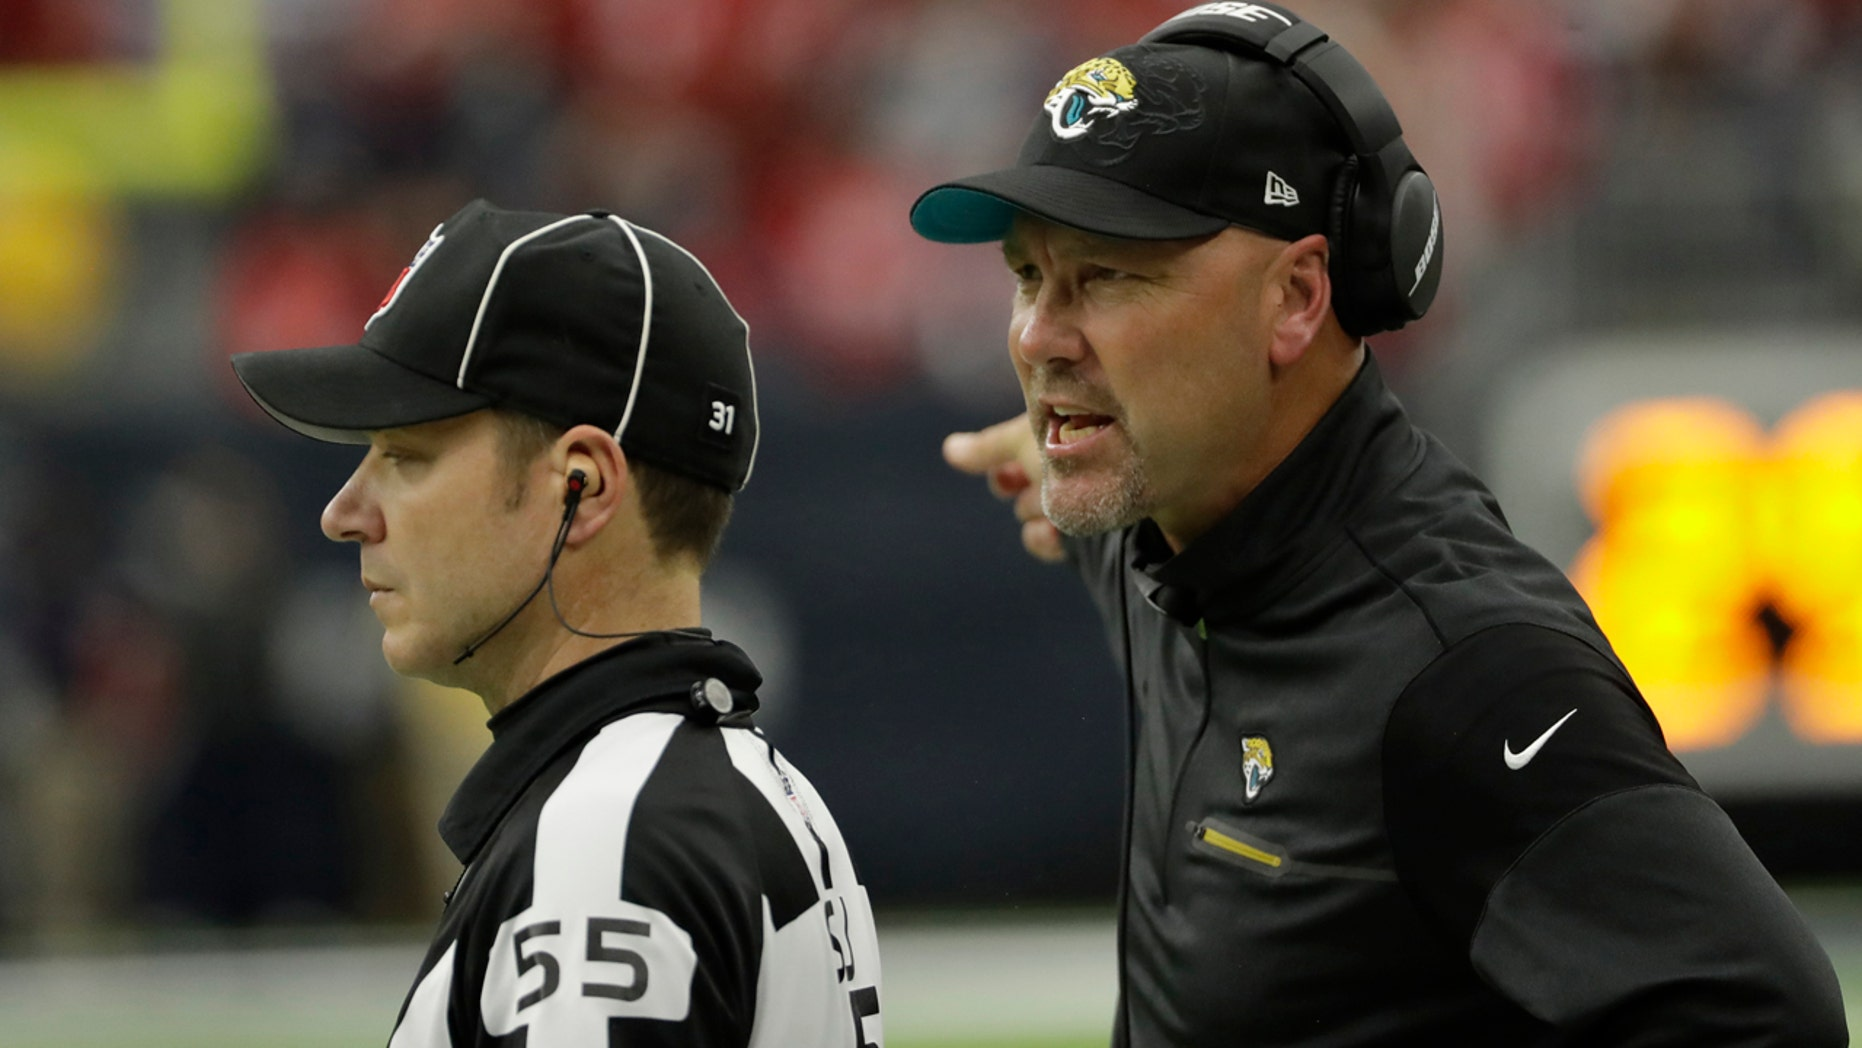 Dec. 18, 2016: Jacksonville Jaguars head coach Gus Bradley, right, reacts during the first half of an NFL football game against the Houston Texans in Houston.  The Jaguars lost and Bradley was fired after the game.